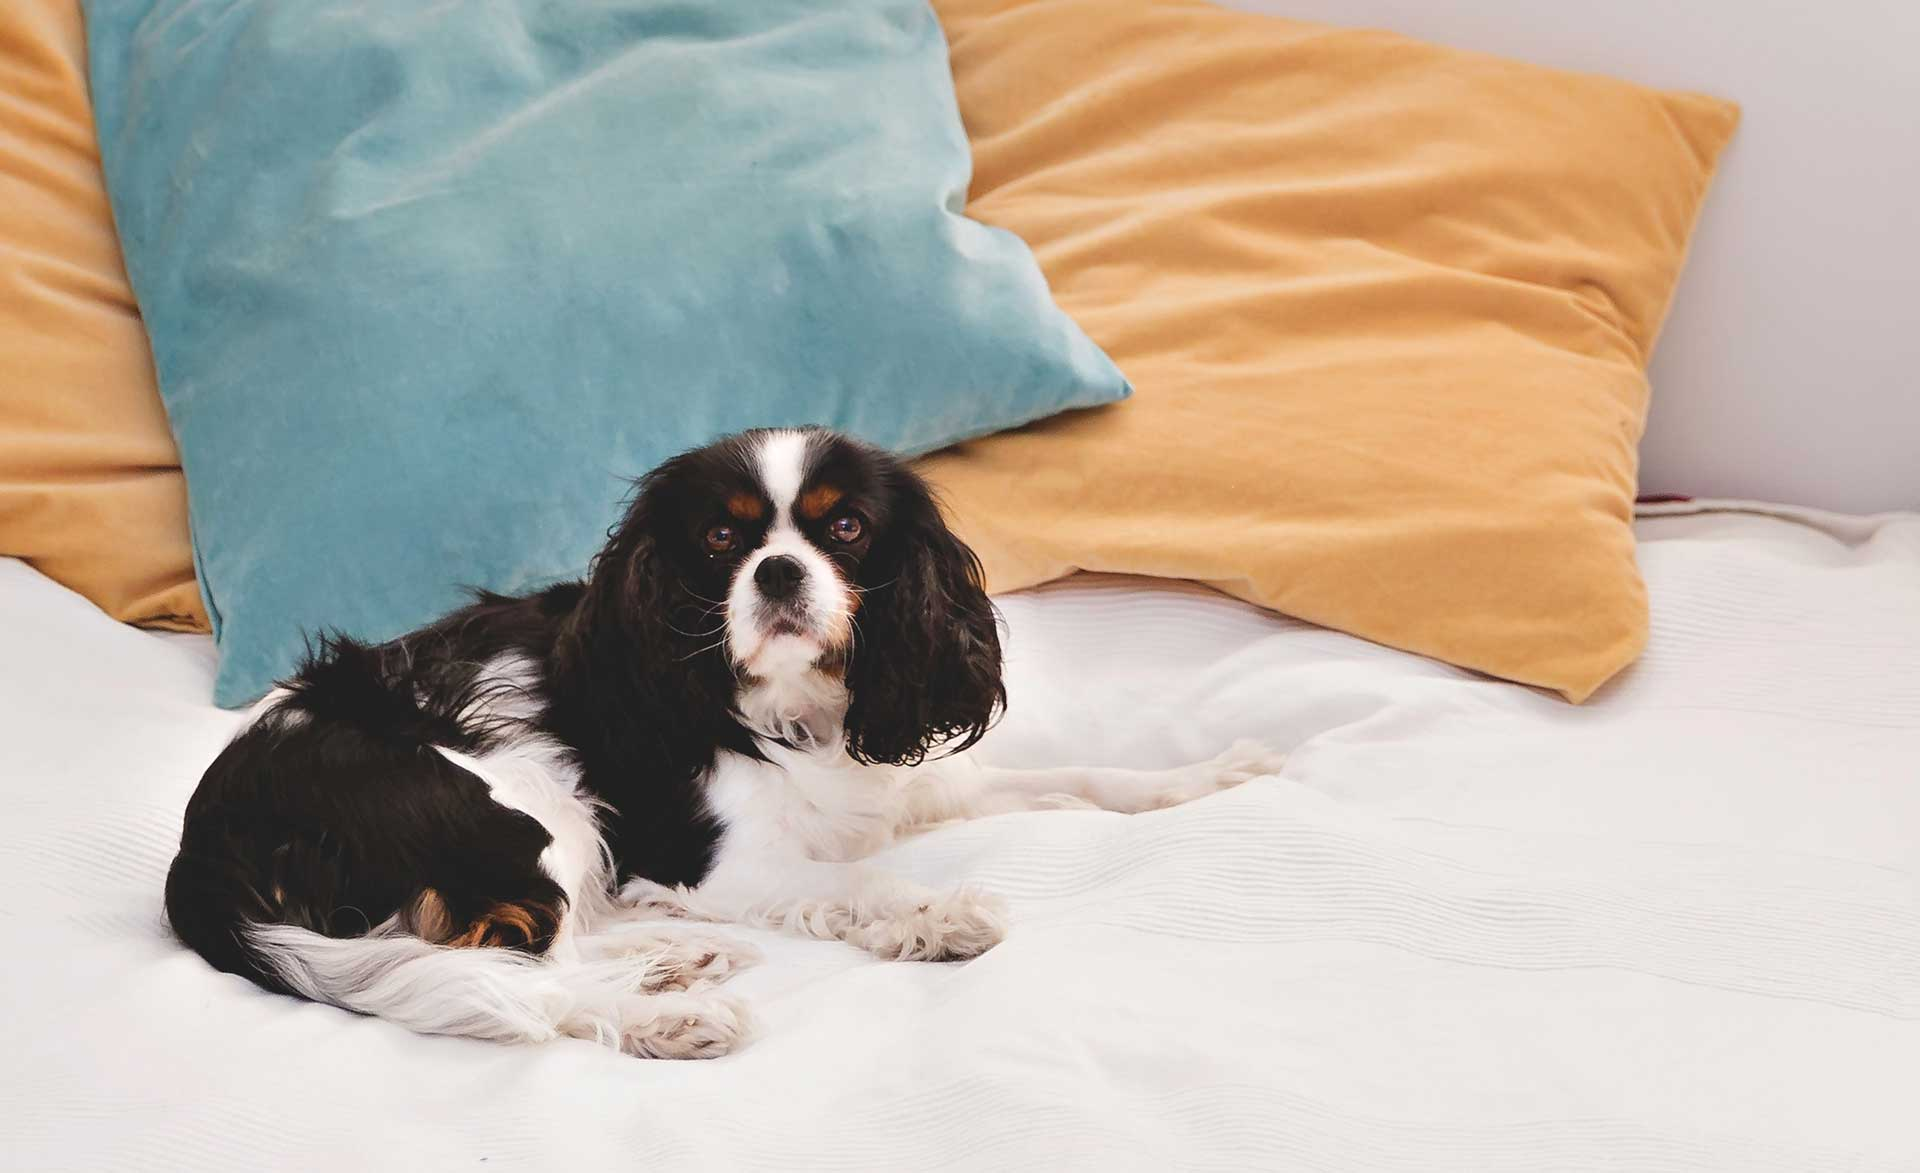 Pet safety tips: Checking in on your furry best friend while you're away. - blog post image